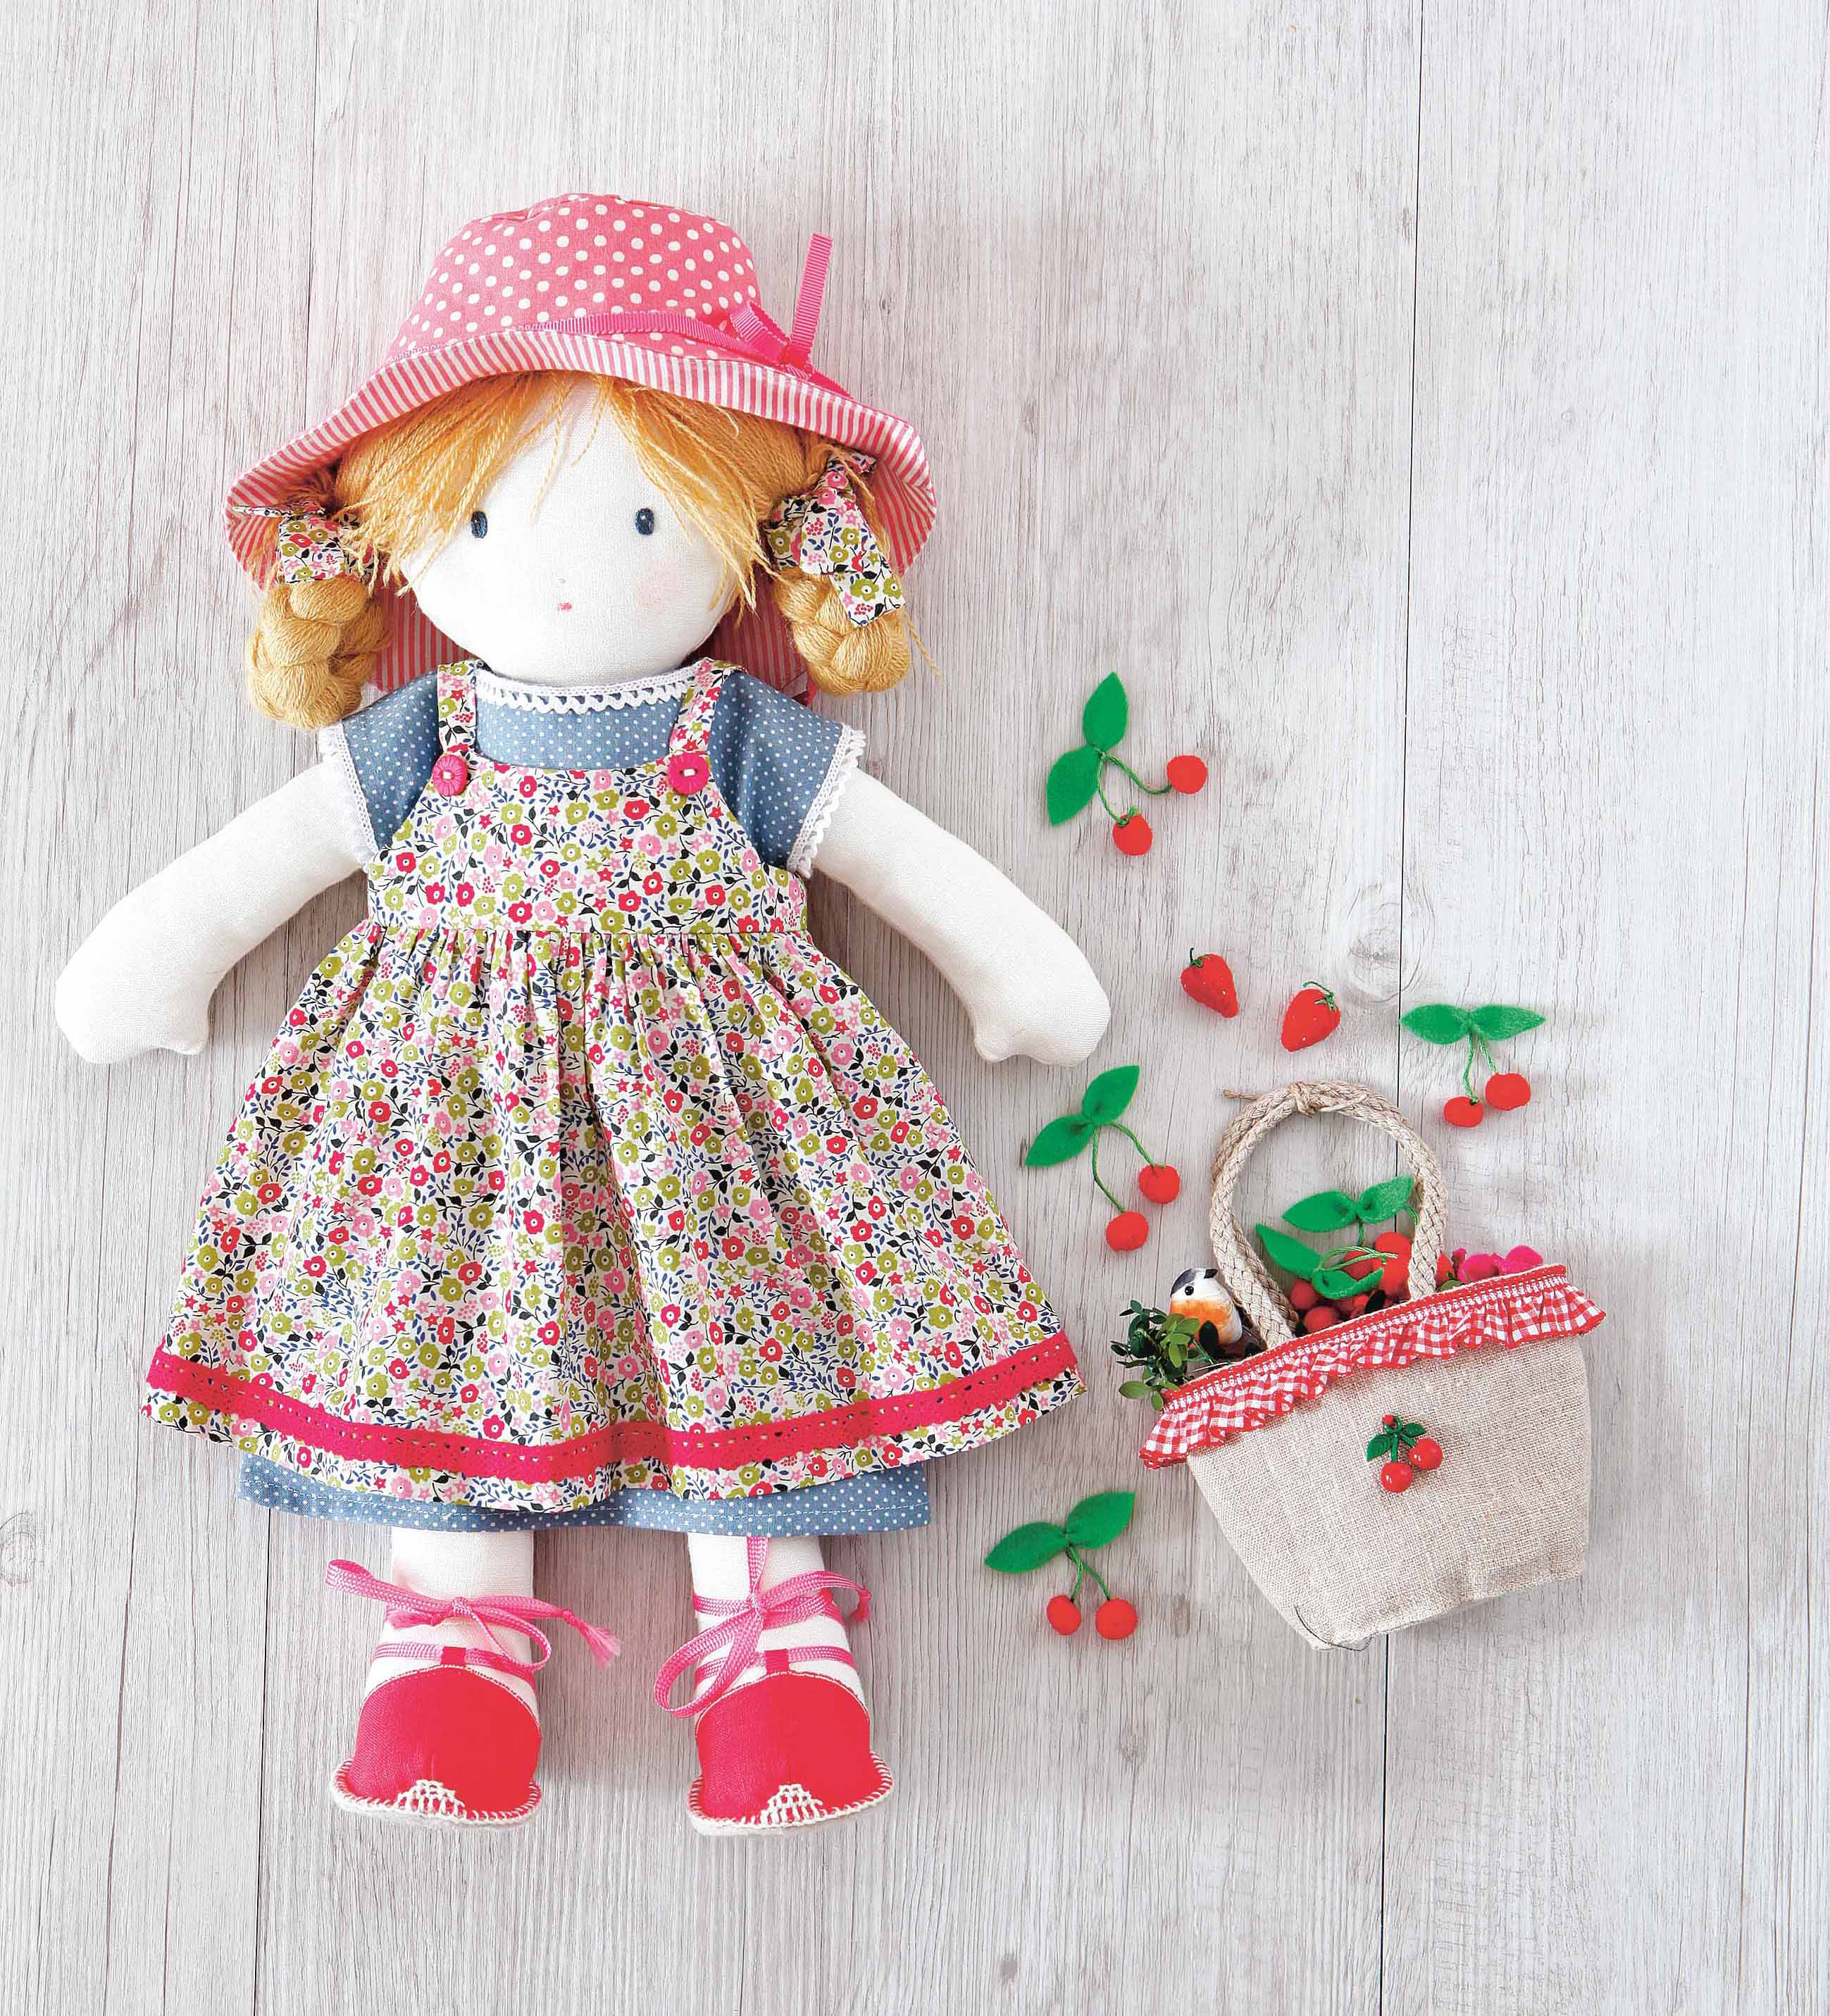 """Doll Patterns Best Of My Rag Doll Adorable Dolls to Sew Of Doll Patterns Inspirational 12"""" Doll Crochet Pattern Mamacheemamachee"""